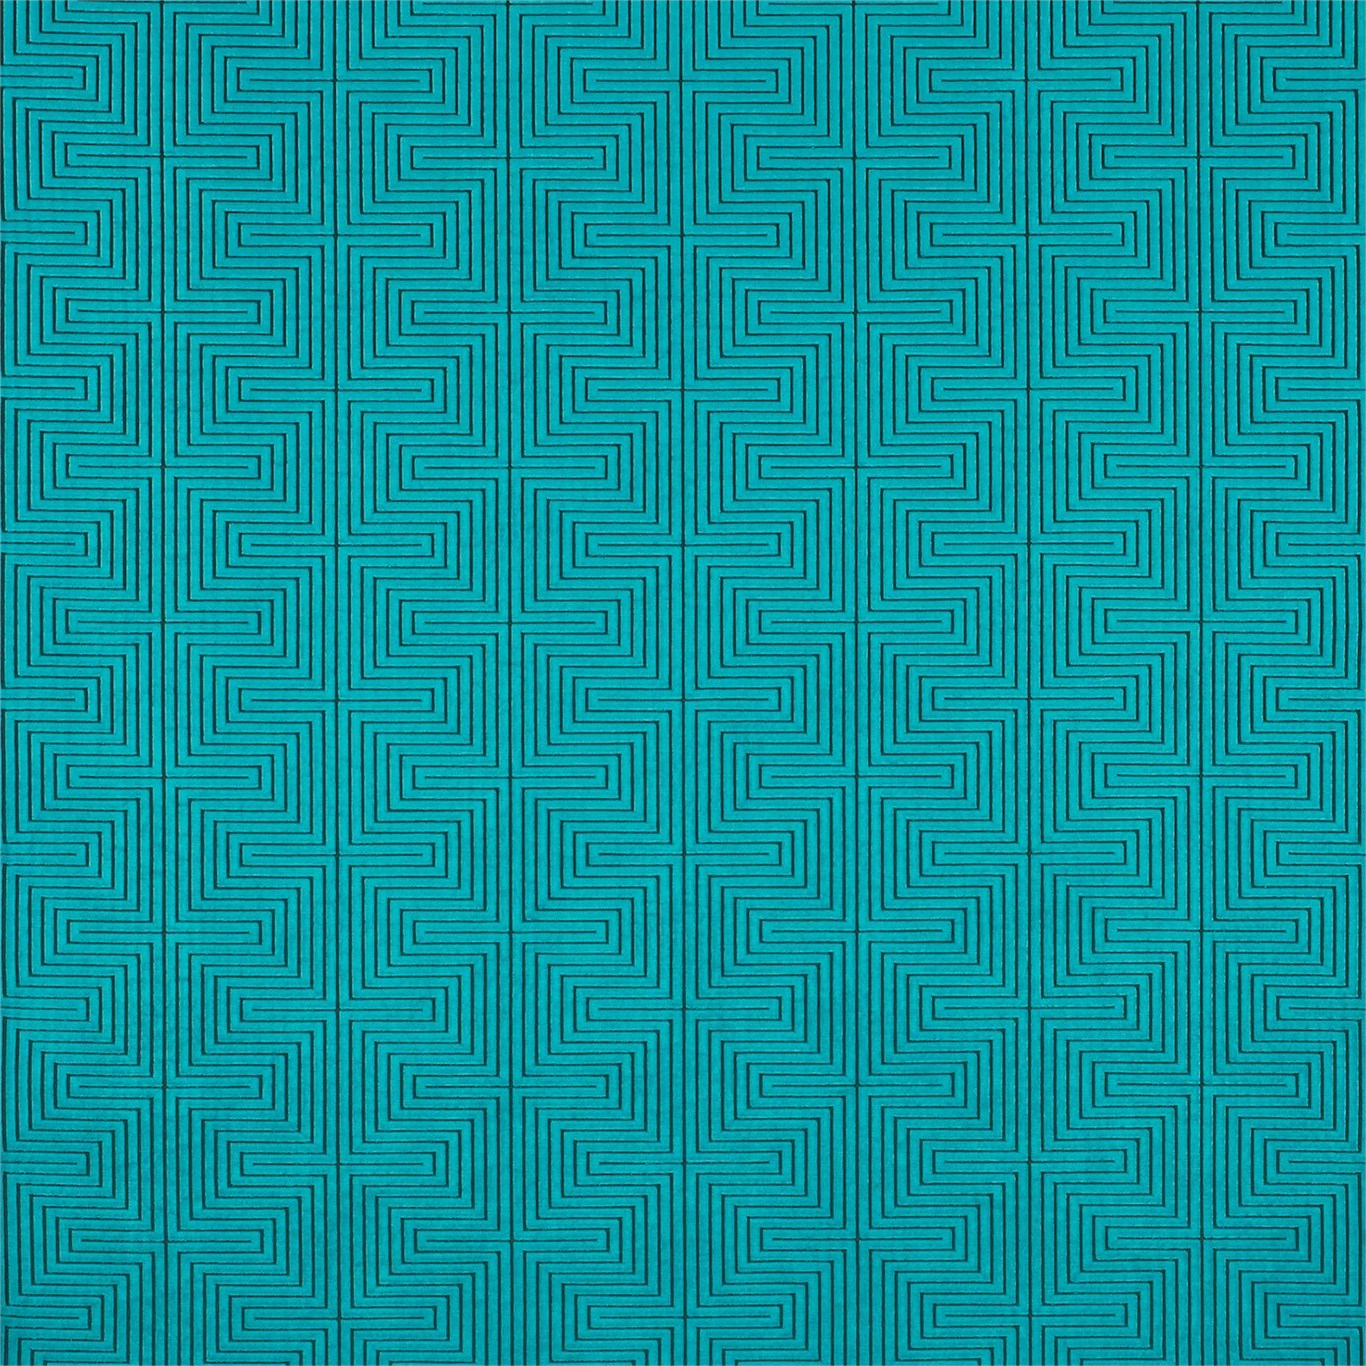 Concept Turquoise